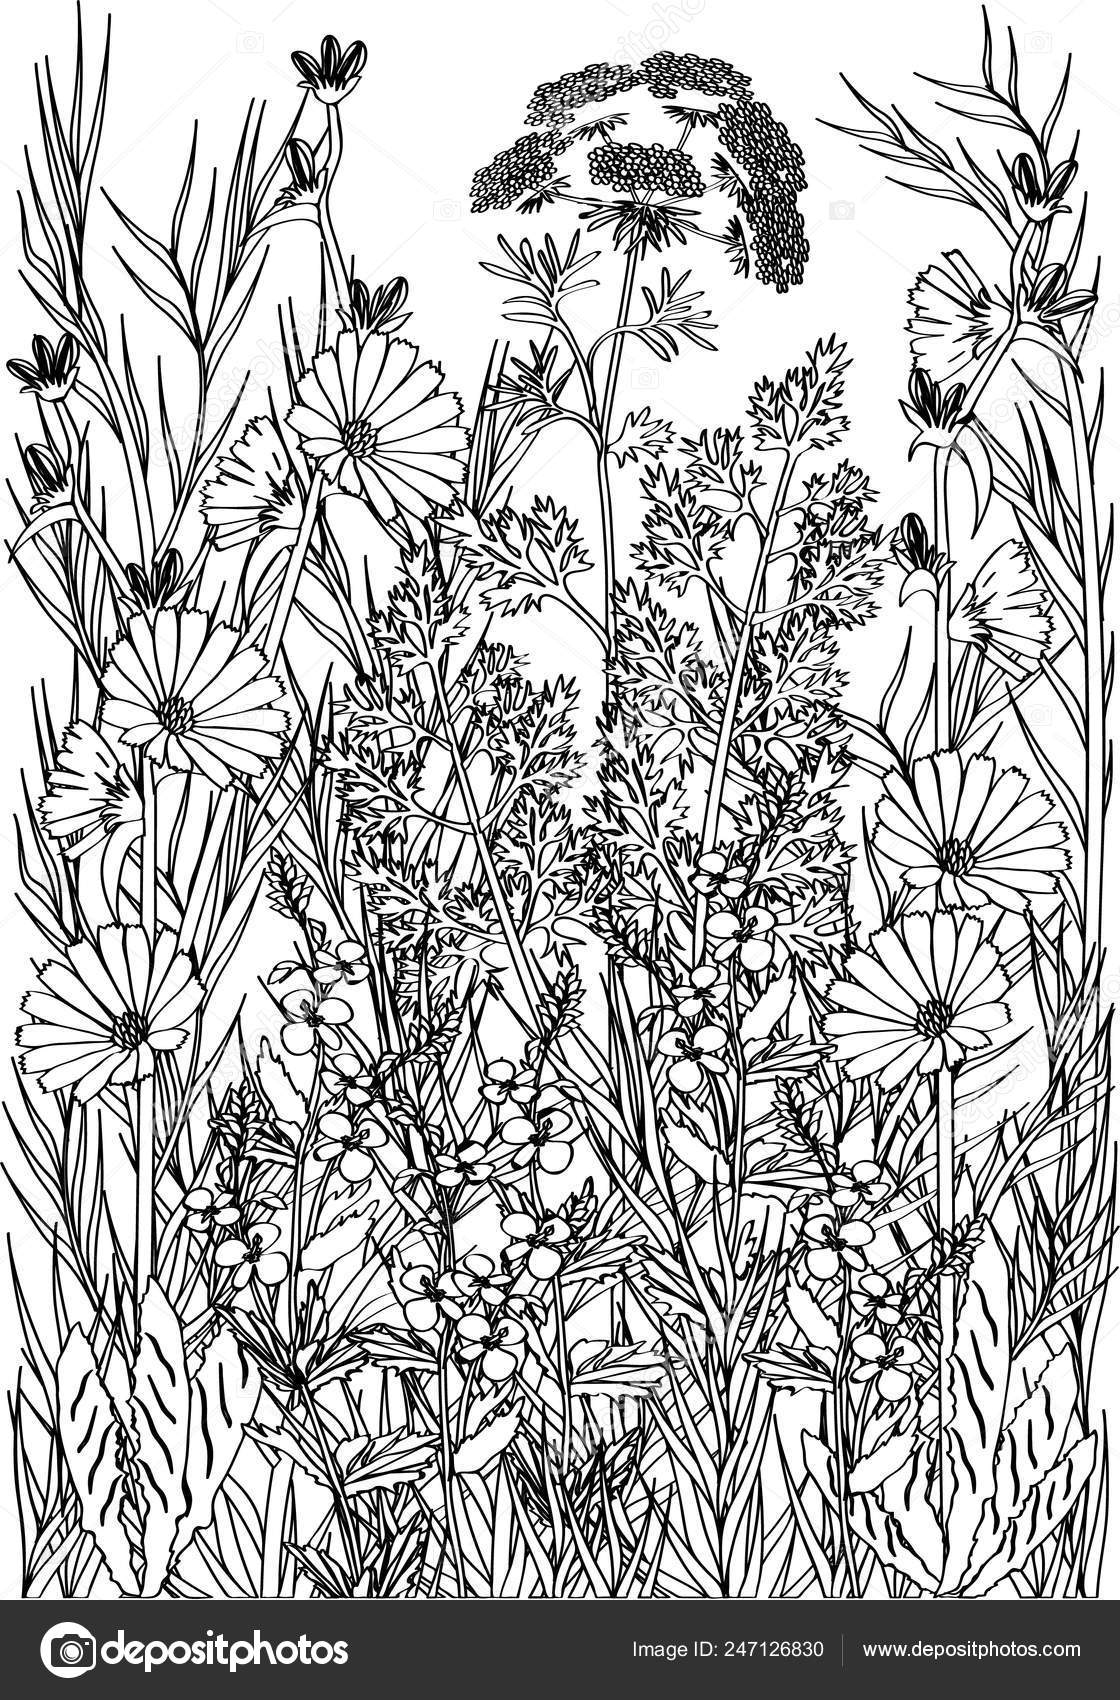 Coloring Page Flowers Plants Meditation — Stock Vector ...